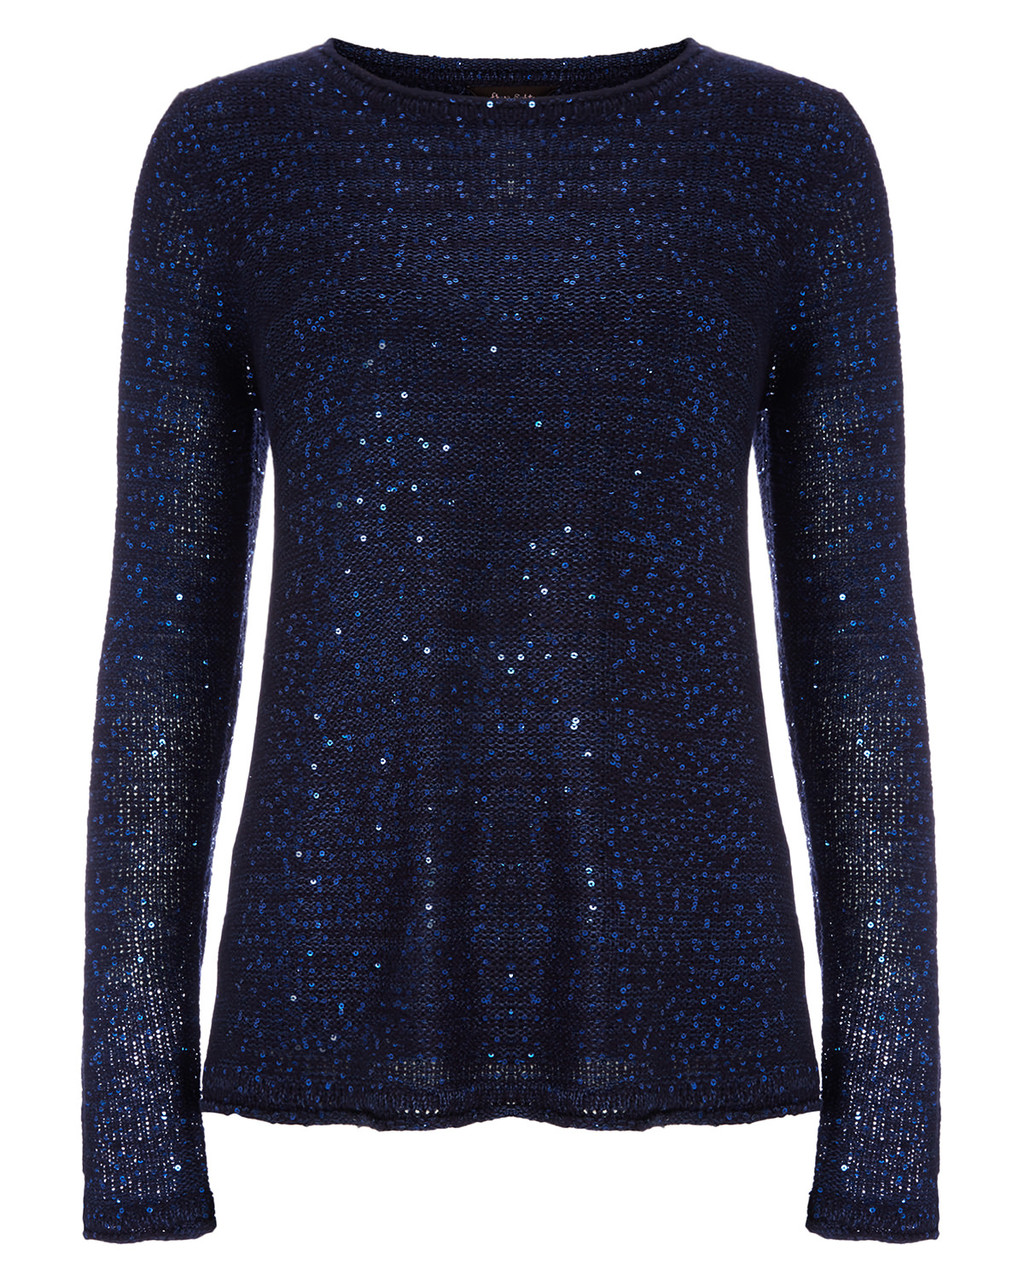 Aisha Sequin Split Back Knit - pattern: plain; style: standard; predominant colour: navy; occasions: casual, creative work; length: standard; fit: standard fit; neckline: crew; sleeve length: long sleeve; sleeve style: standard; texture group: knits/crochet; pattern type: knitted - fine stitch; embellishment: sequins; season: a/w 2015